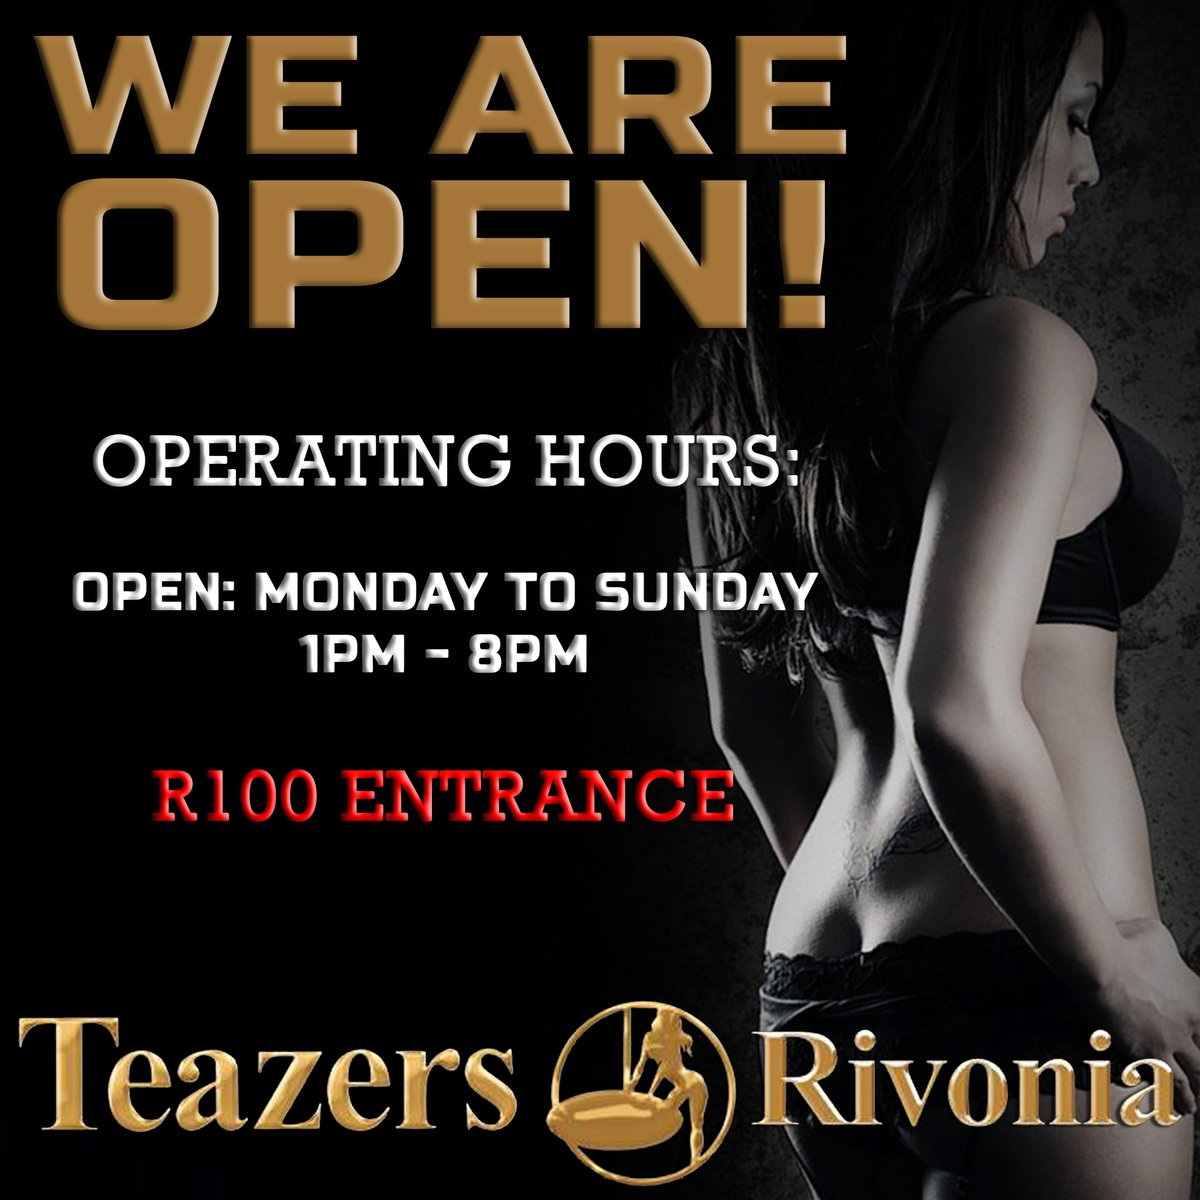 #Teazers #teazersRivonia #WeAreOpen #Entertainers #NudeBru #Girls #Poledance #fitgirls   WE ARE OPEN!  We are operating within the following hours:   Open - Mon - Sun 1pm - 8pm.  See you there!    visit -